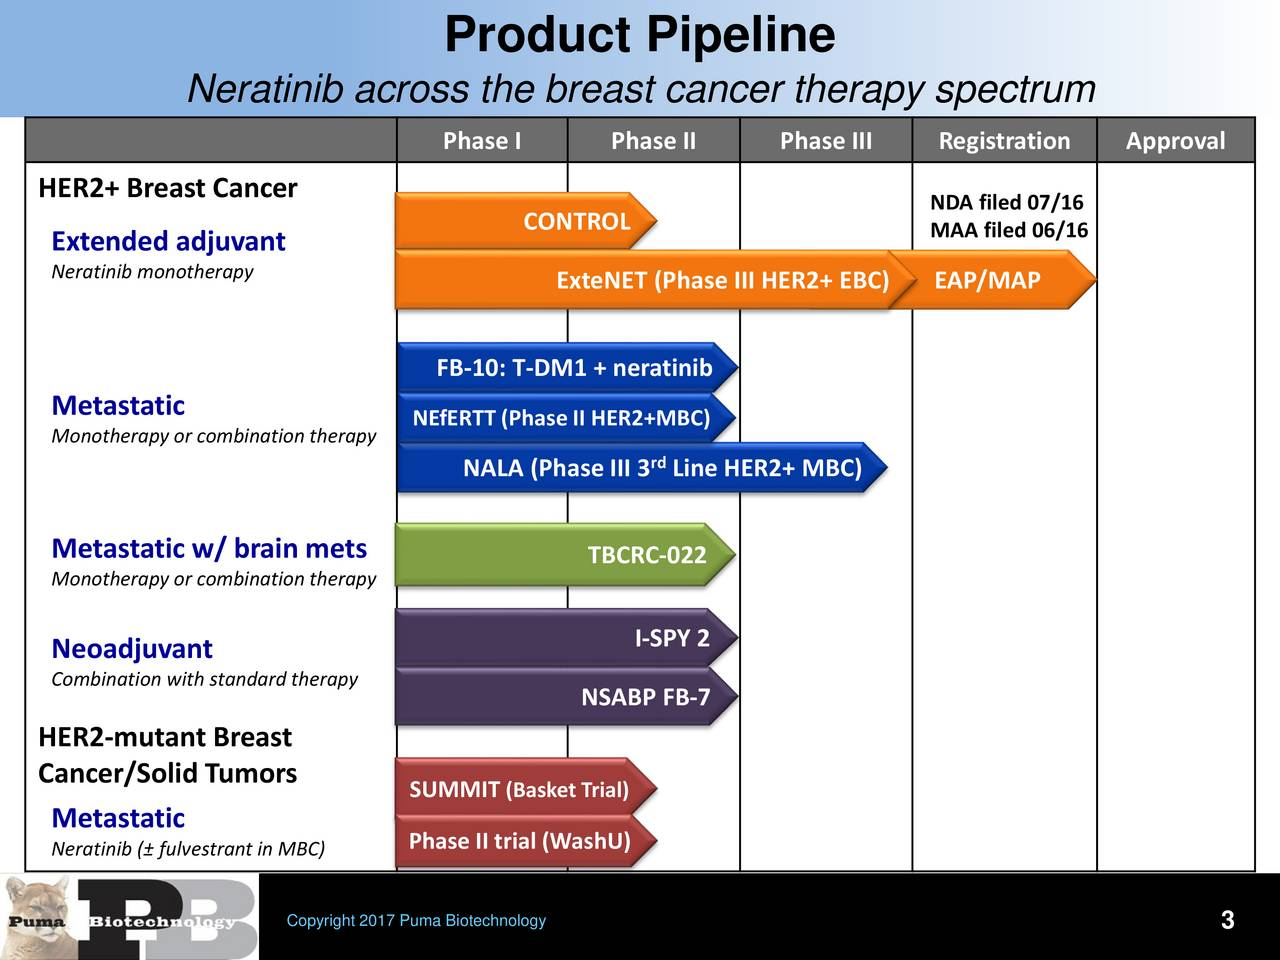 Neratinib across the breast cancer therapy spectrum Phase I Phase II Phase III Registration Approval HER2+ Breast Cancer NDA filed 07/16 Extended adjuvant CONTROL MAA filed 06/16 Neratinib monotherapy ExteNET (Phase III HER2+ EBC) EAP/MAP FB-10: T-DM1 + neratinib NSABP FB-7 Metastatic NEfERTT (Phase II HER2+MBC) Monotherapy or combination therapy NALA (Phase III 3 Line HER2+ MBC) Metastatic w/ brain mets TBCRC-022 Monotherapy or combination therapy I-SPY 2 Neoadjuvant Combination with standard therapy NSABP FB-7 HER2-mutant Breast Cancer/Solid Tumors SUMMIT (Basket Trial) Metastatic Neratinib ( fulvestrant in MBC)hase II trial (WashU) Copyright 2017 Puma Biotechnology 3